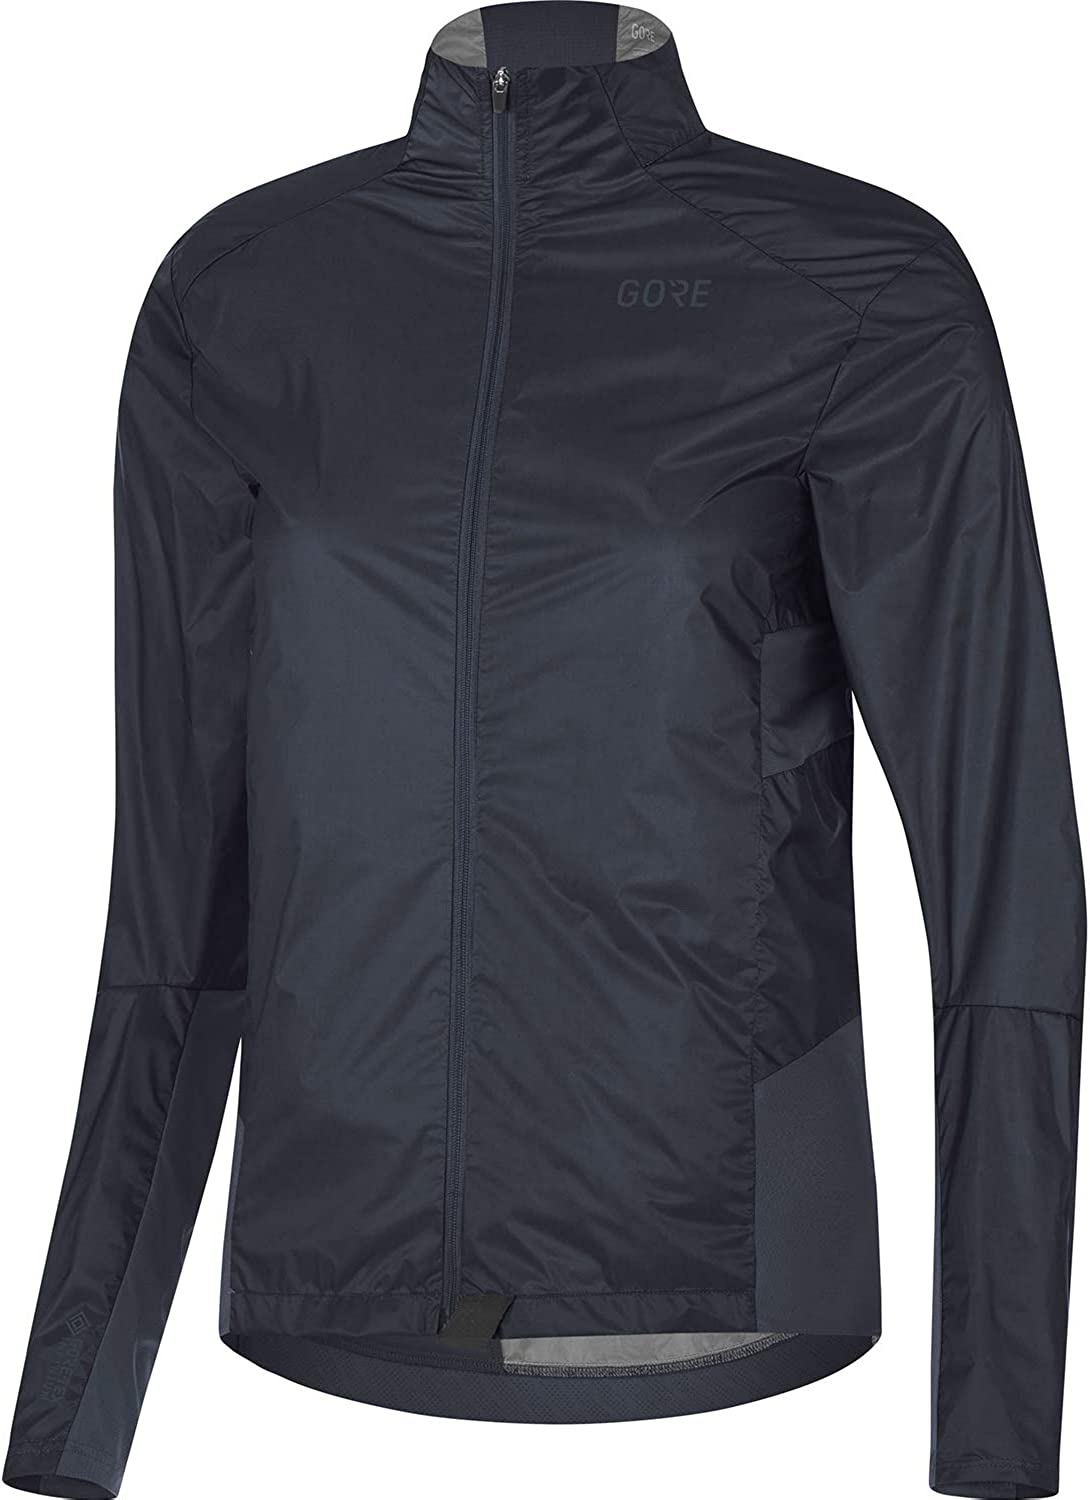 Easy-to-use GORE WEAR Women's Rapid rise Ambient Jacket